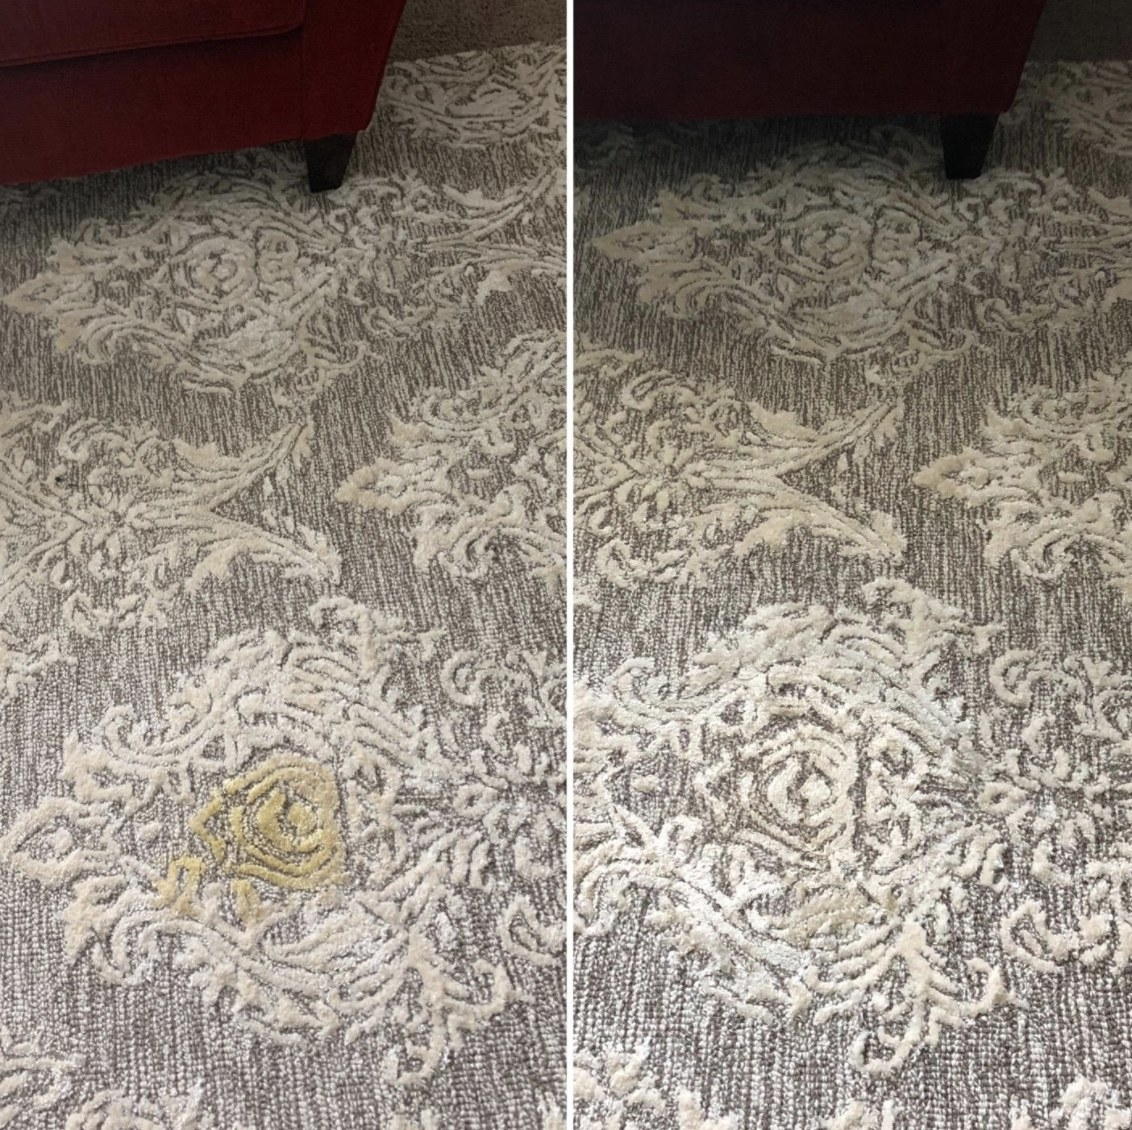 a before and after image of a yellow stain on a carpet being lifted with the stain remover